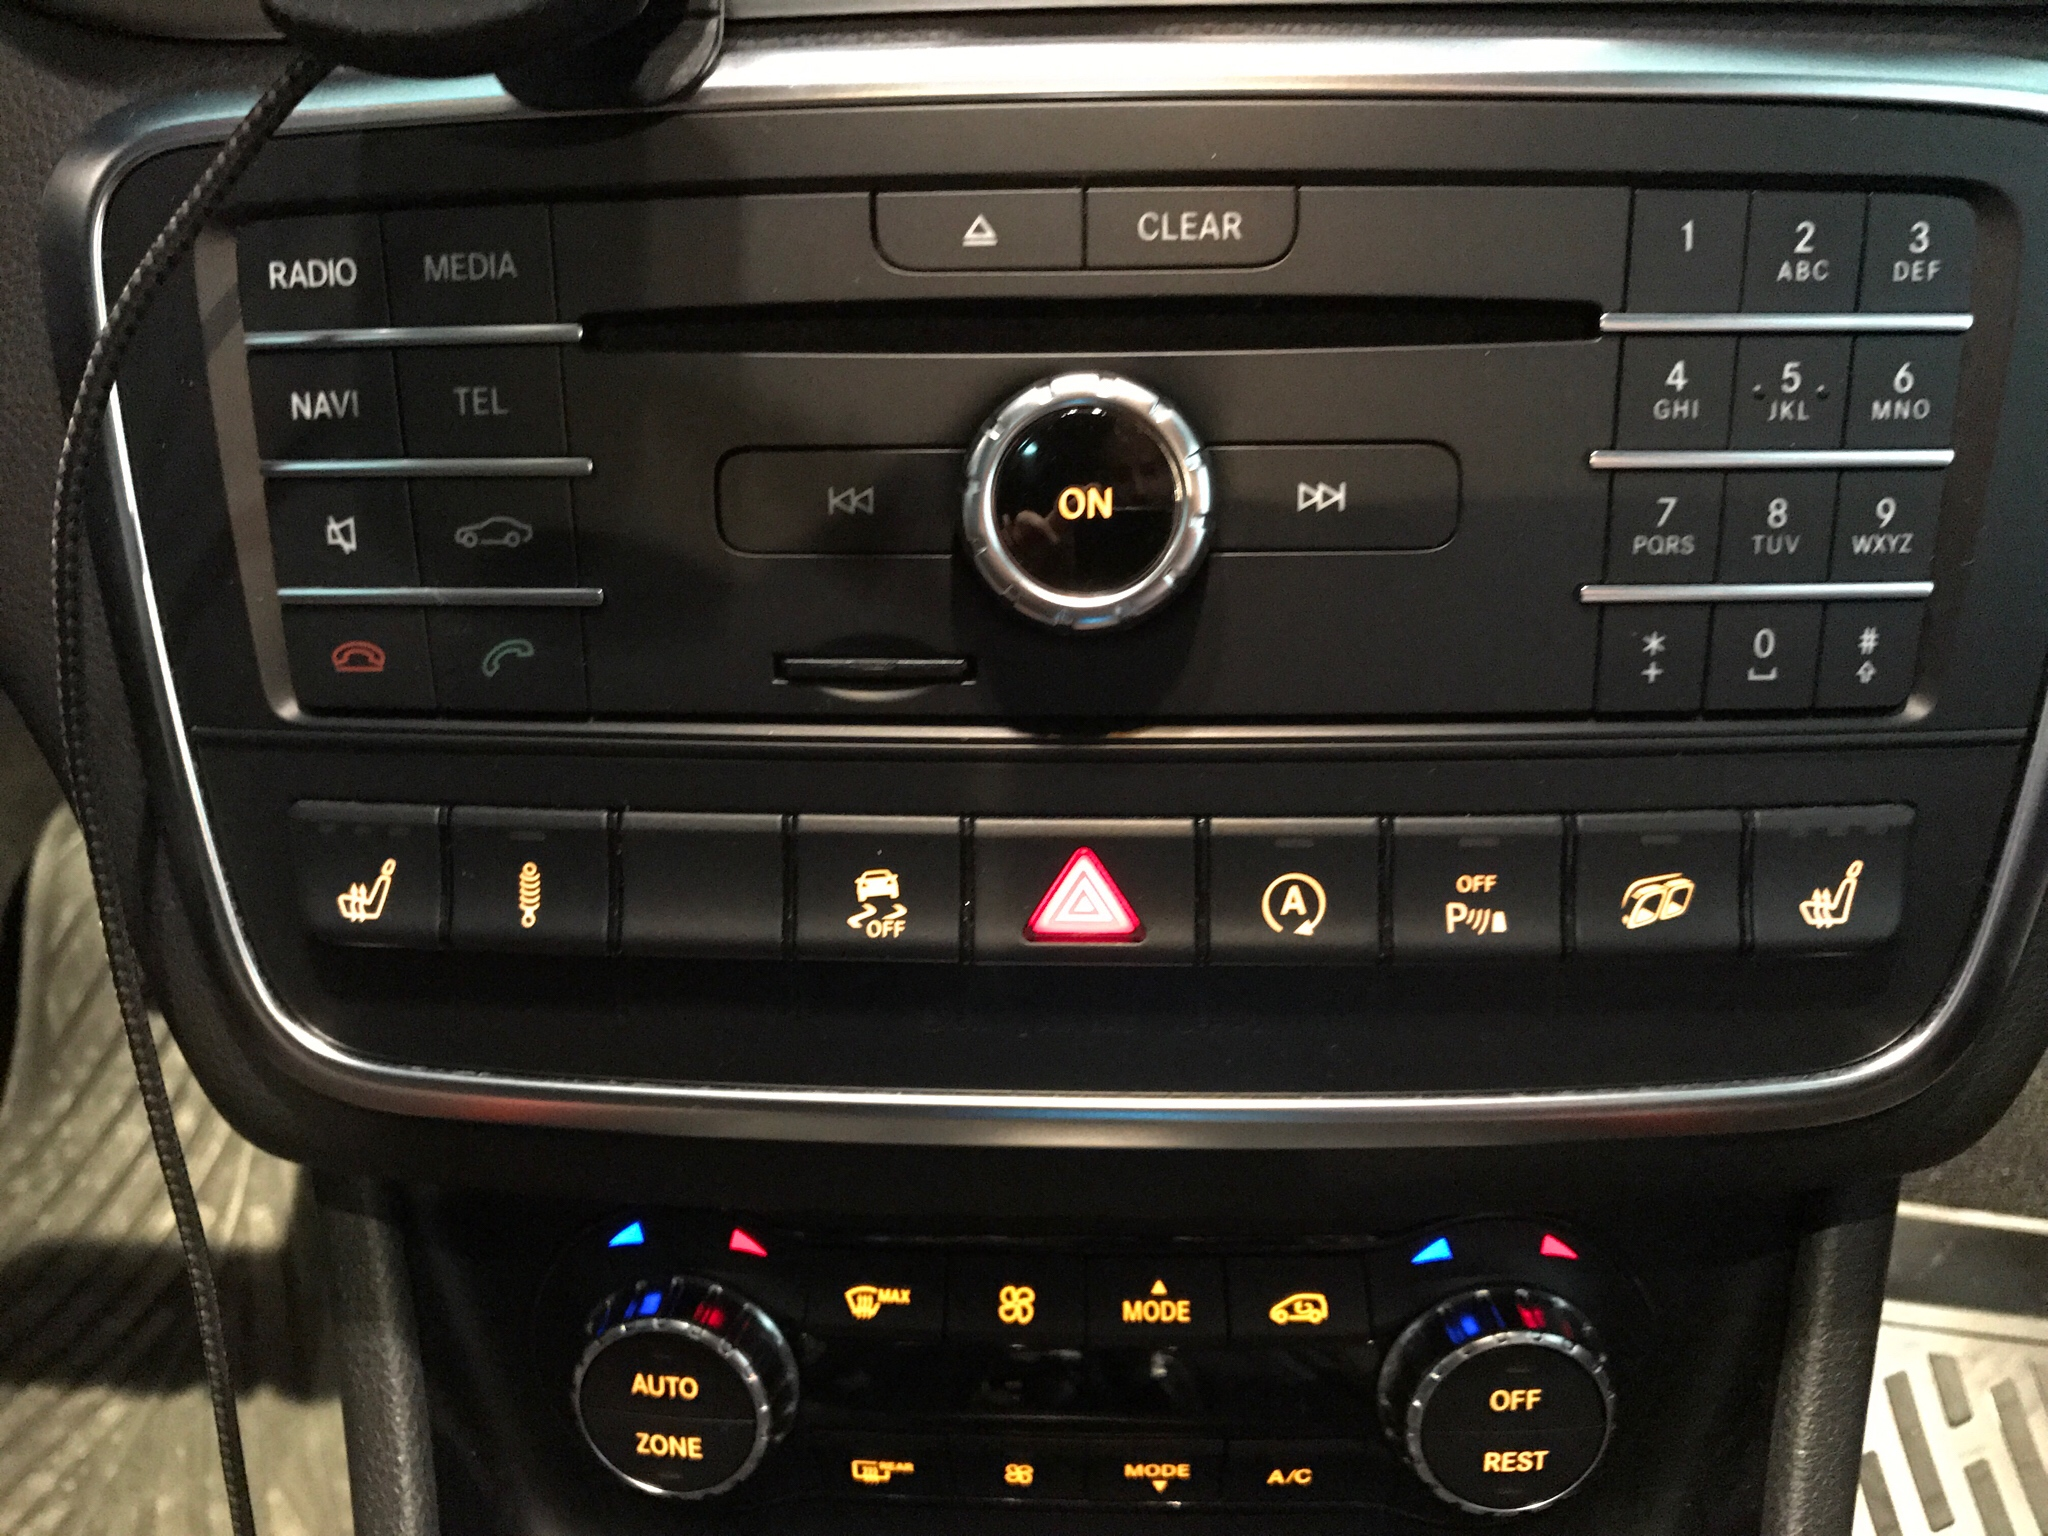 Cla 45 Amg >> That Exhaust Switch button on console does nothing?